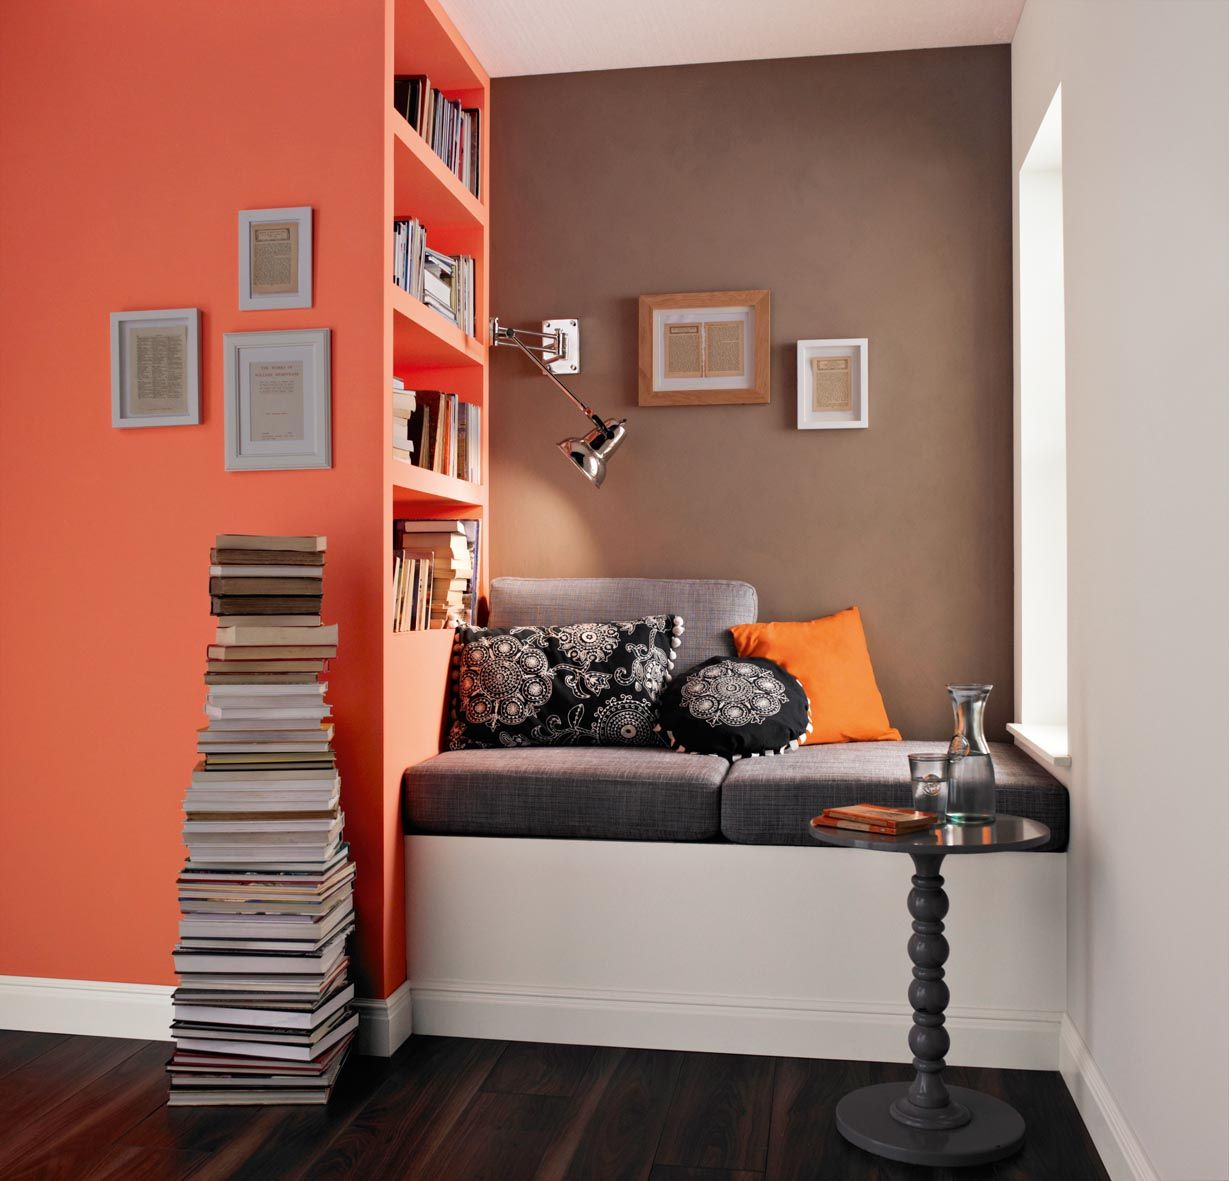 16 Enticing Wall Decorating Ideas For Your Living Room: Maximize Space In Your Home, Apply The Right Colours And